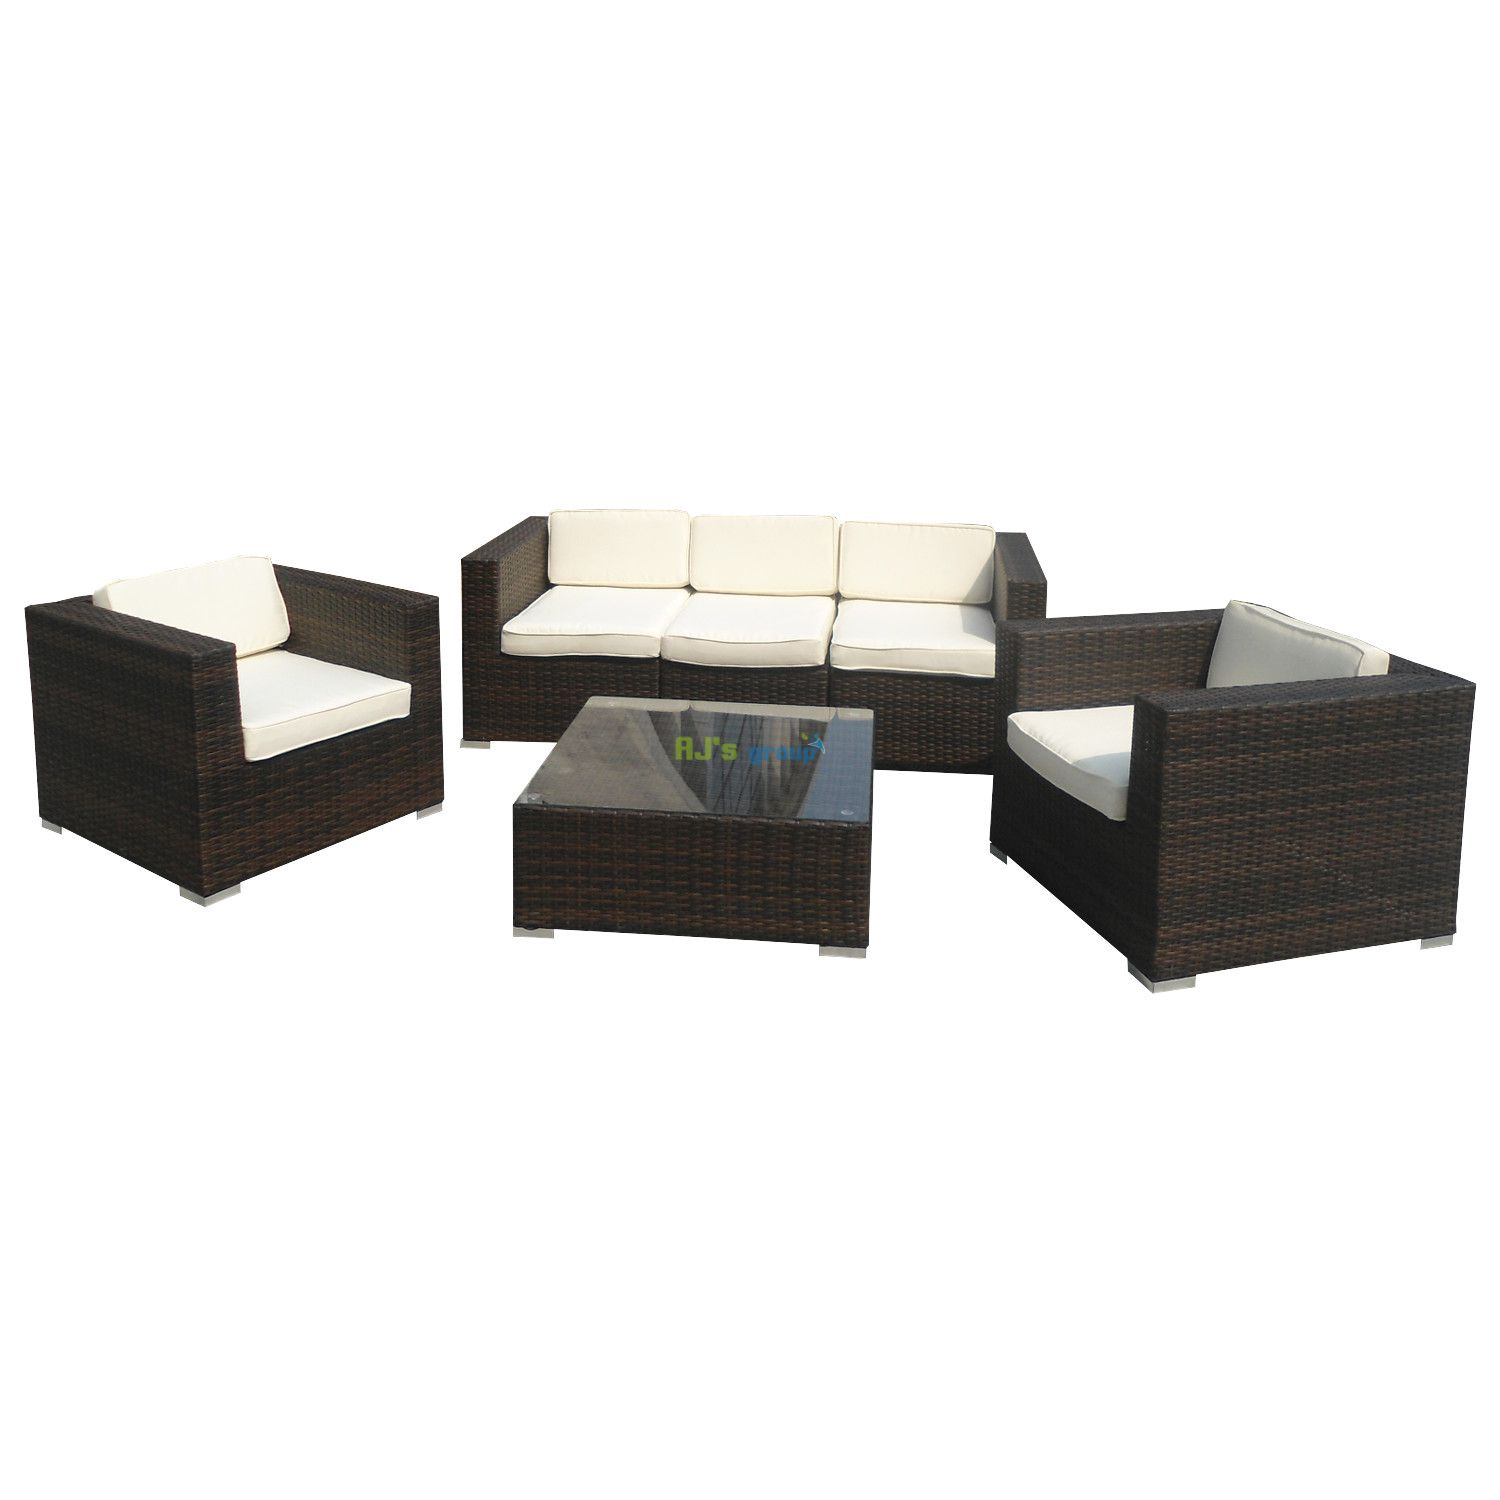 polyrattan gartenmbel outlet excellent gartenmbel lounge bombay kissen fr coffee table with. Black Bedroom Furniture Sets. Home Design Ideas